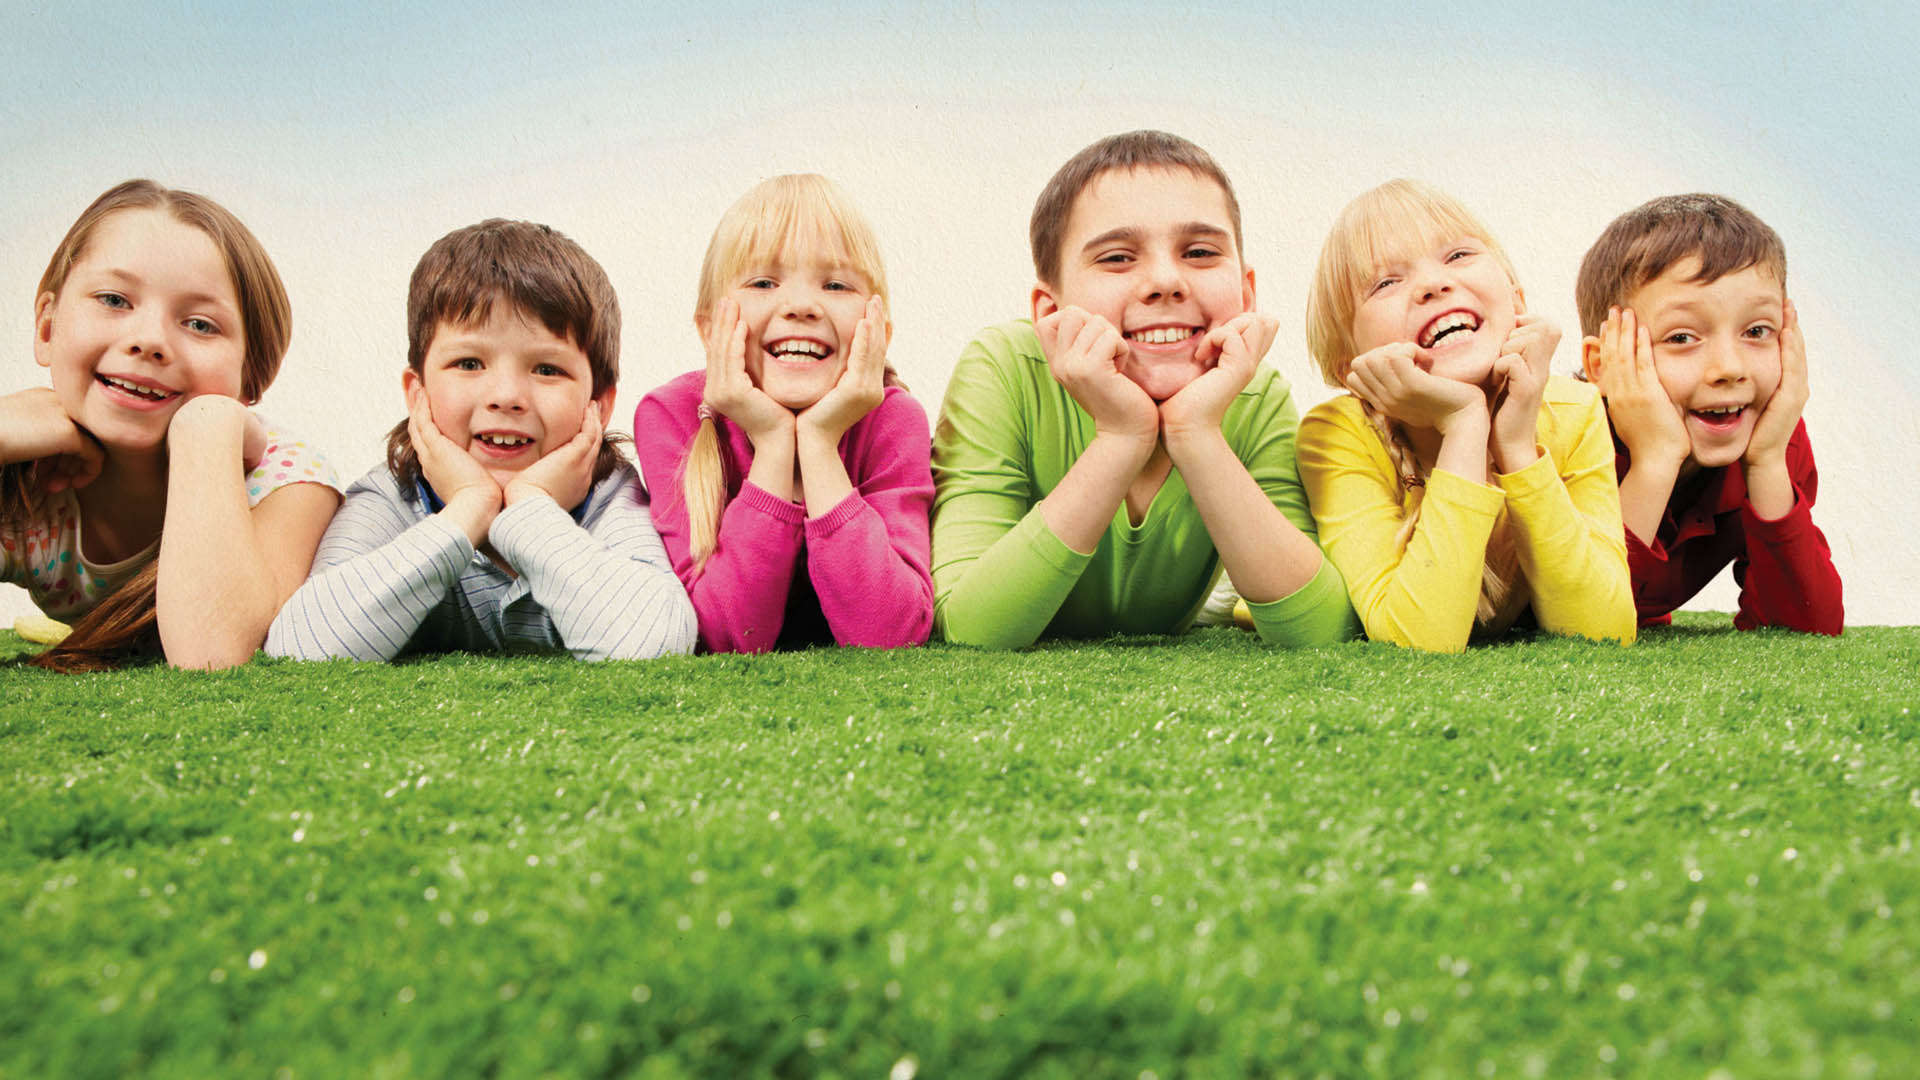 happy children s day greetings and wallpapers hd retina techicy